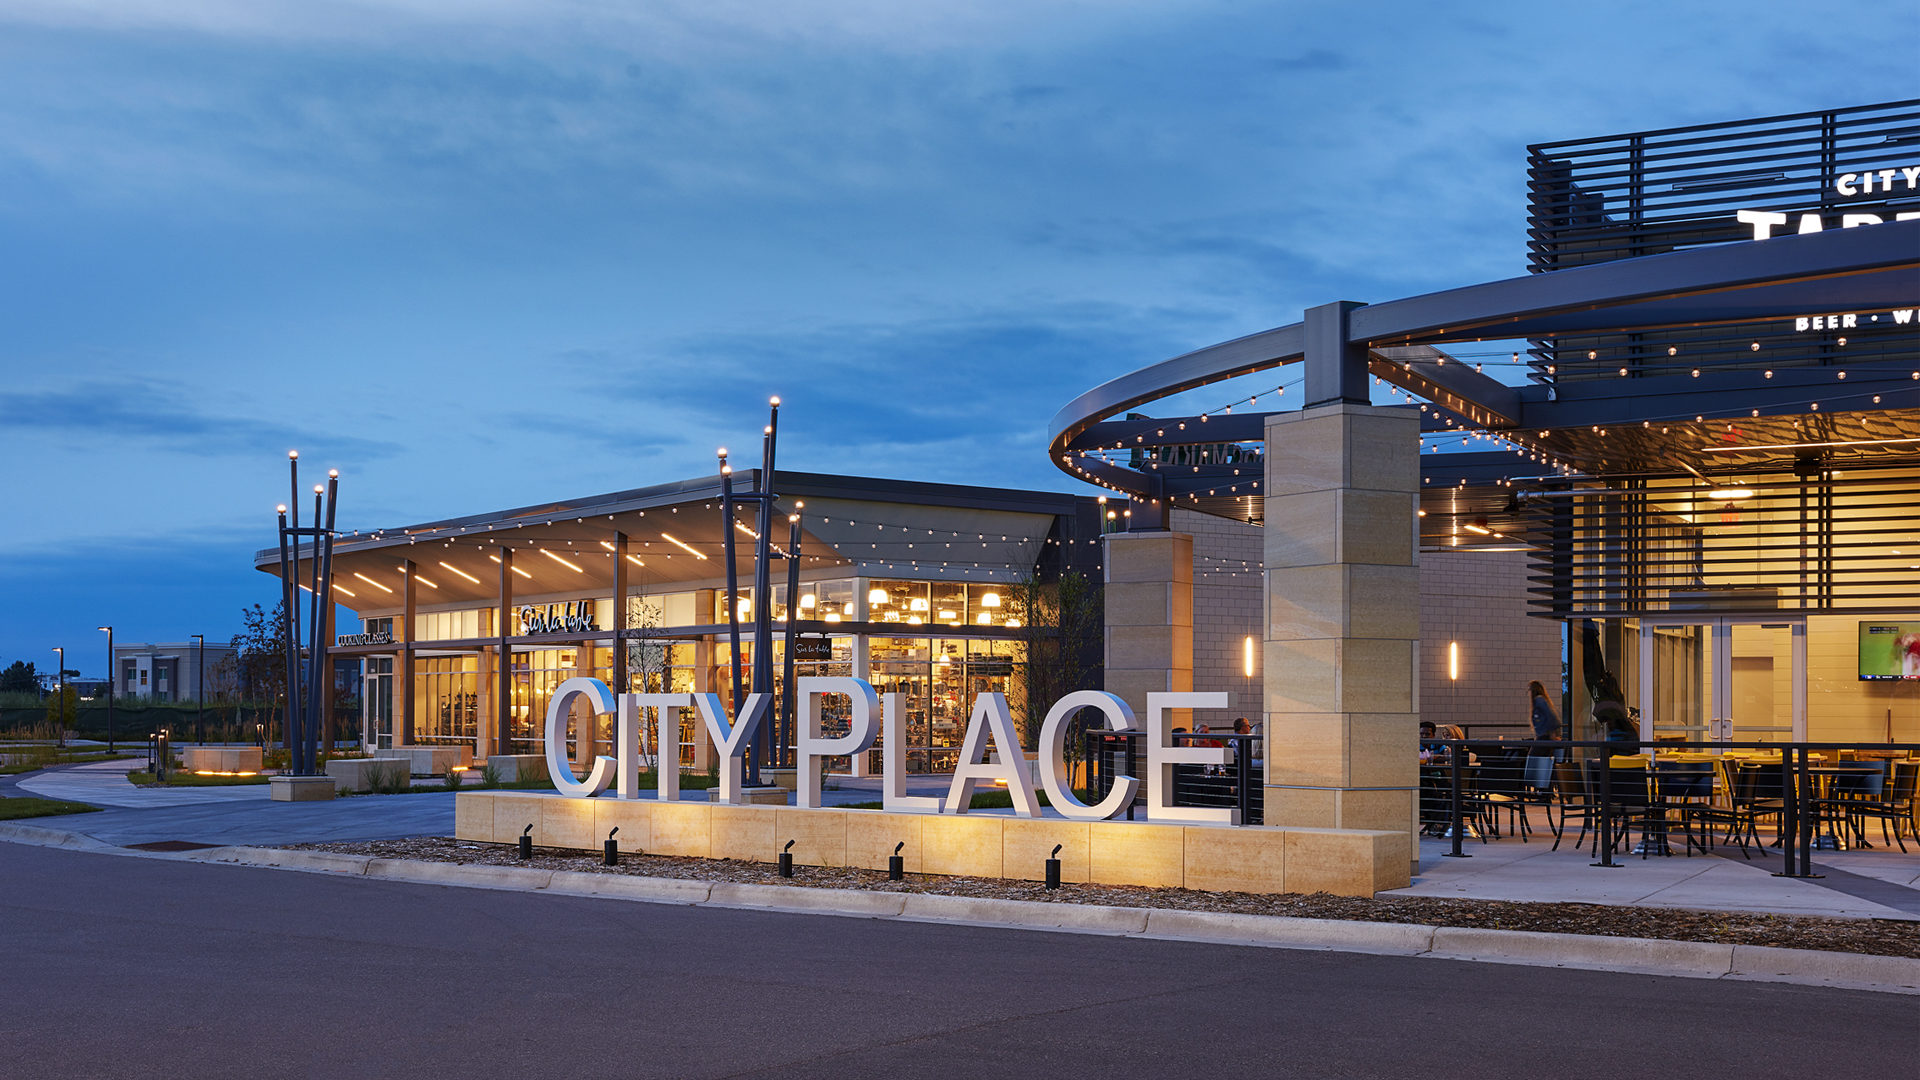 CityPlace Redevelopment Shopping Center Site Exterior Lit Sign in Front of Whole Foods